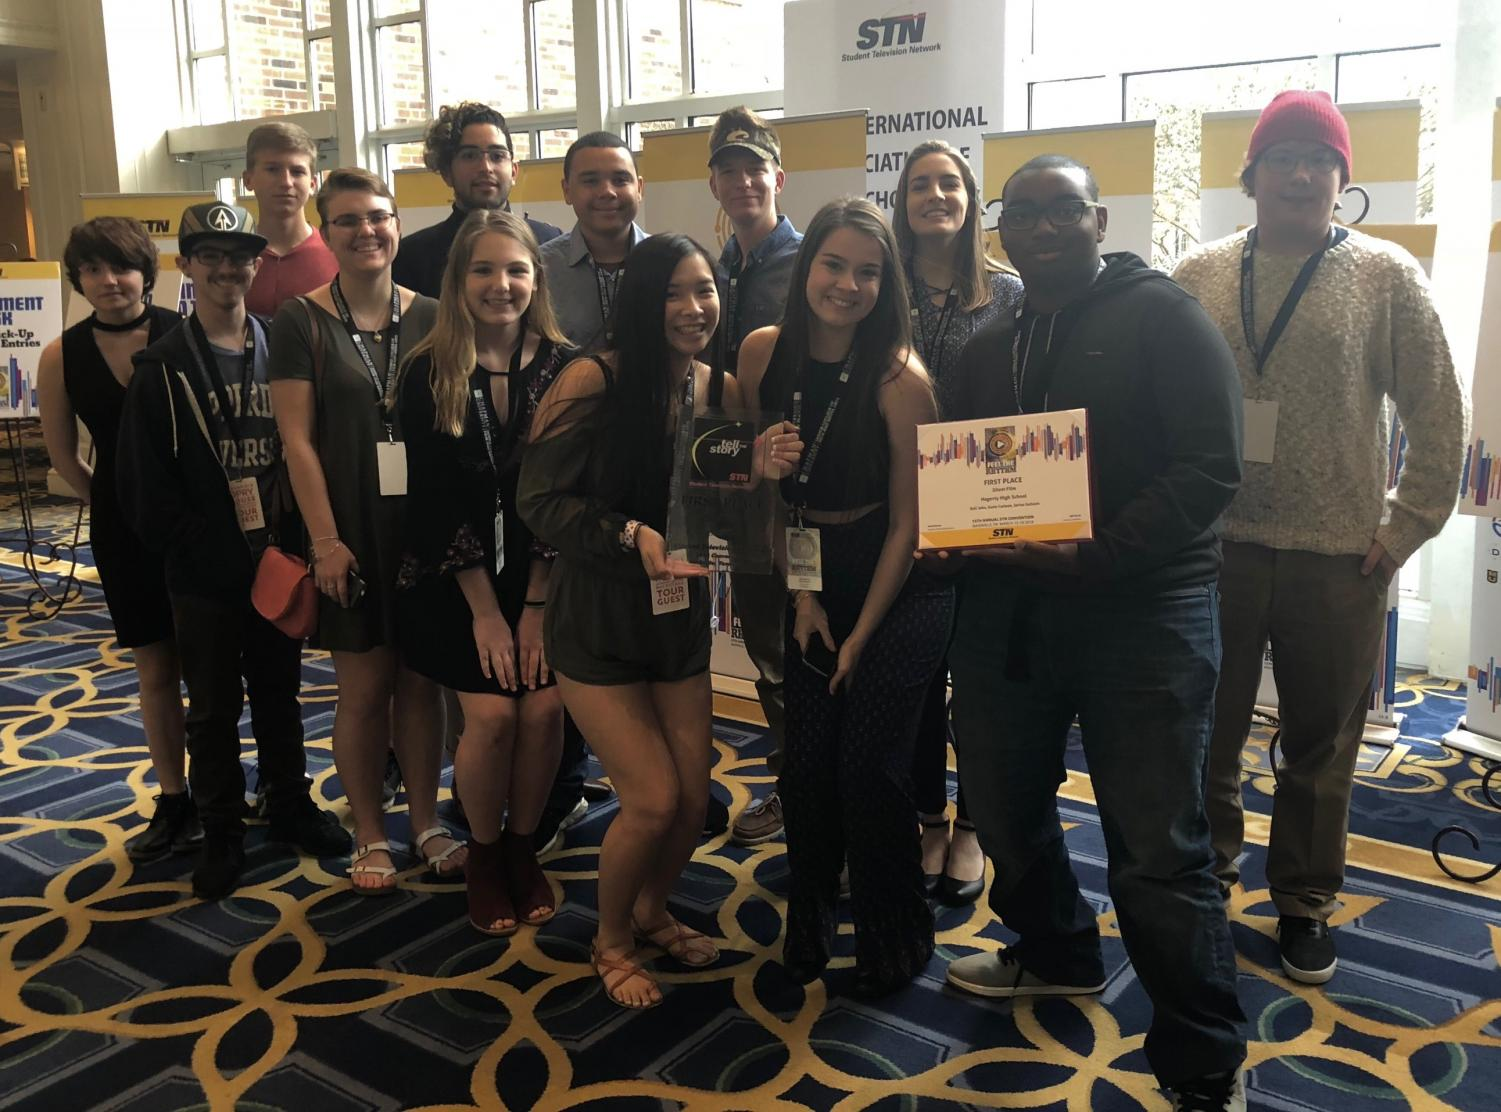 Juniors Katie Carlson and Kali Jobs (front center) were part of the group of TV Production students to win the Silent Film Competition at the Student Television Network conference in Nashville, Tennessee.